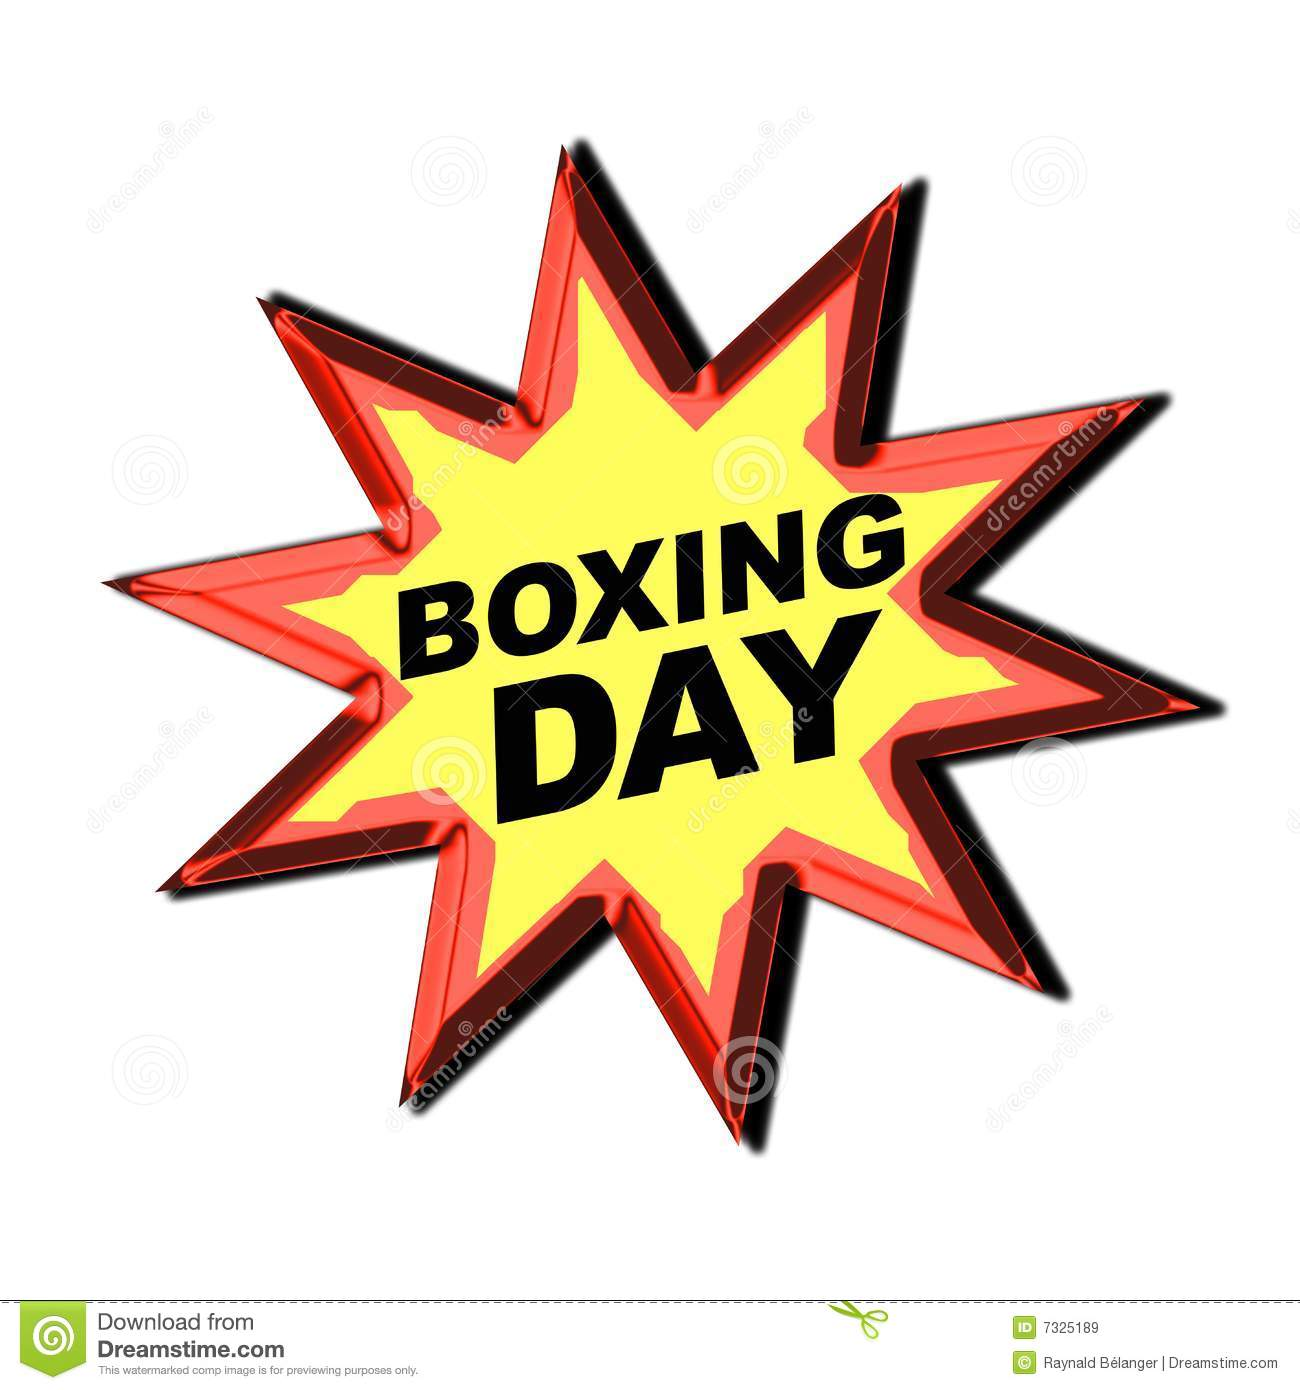 Boxing Day Image